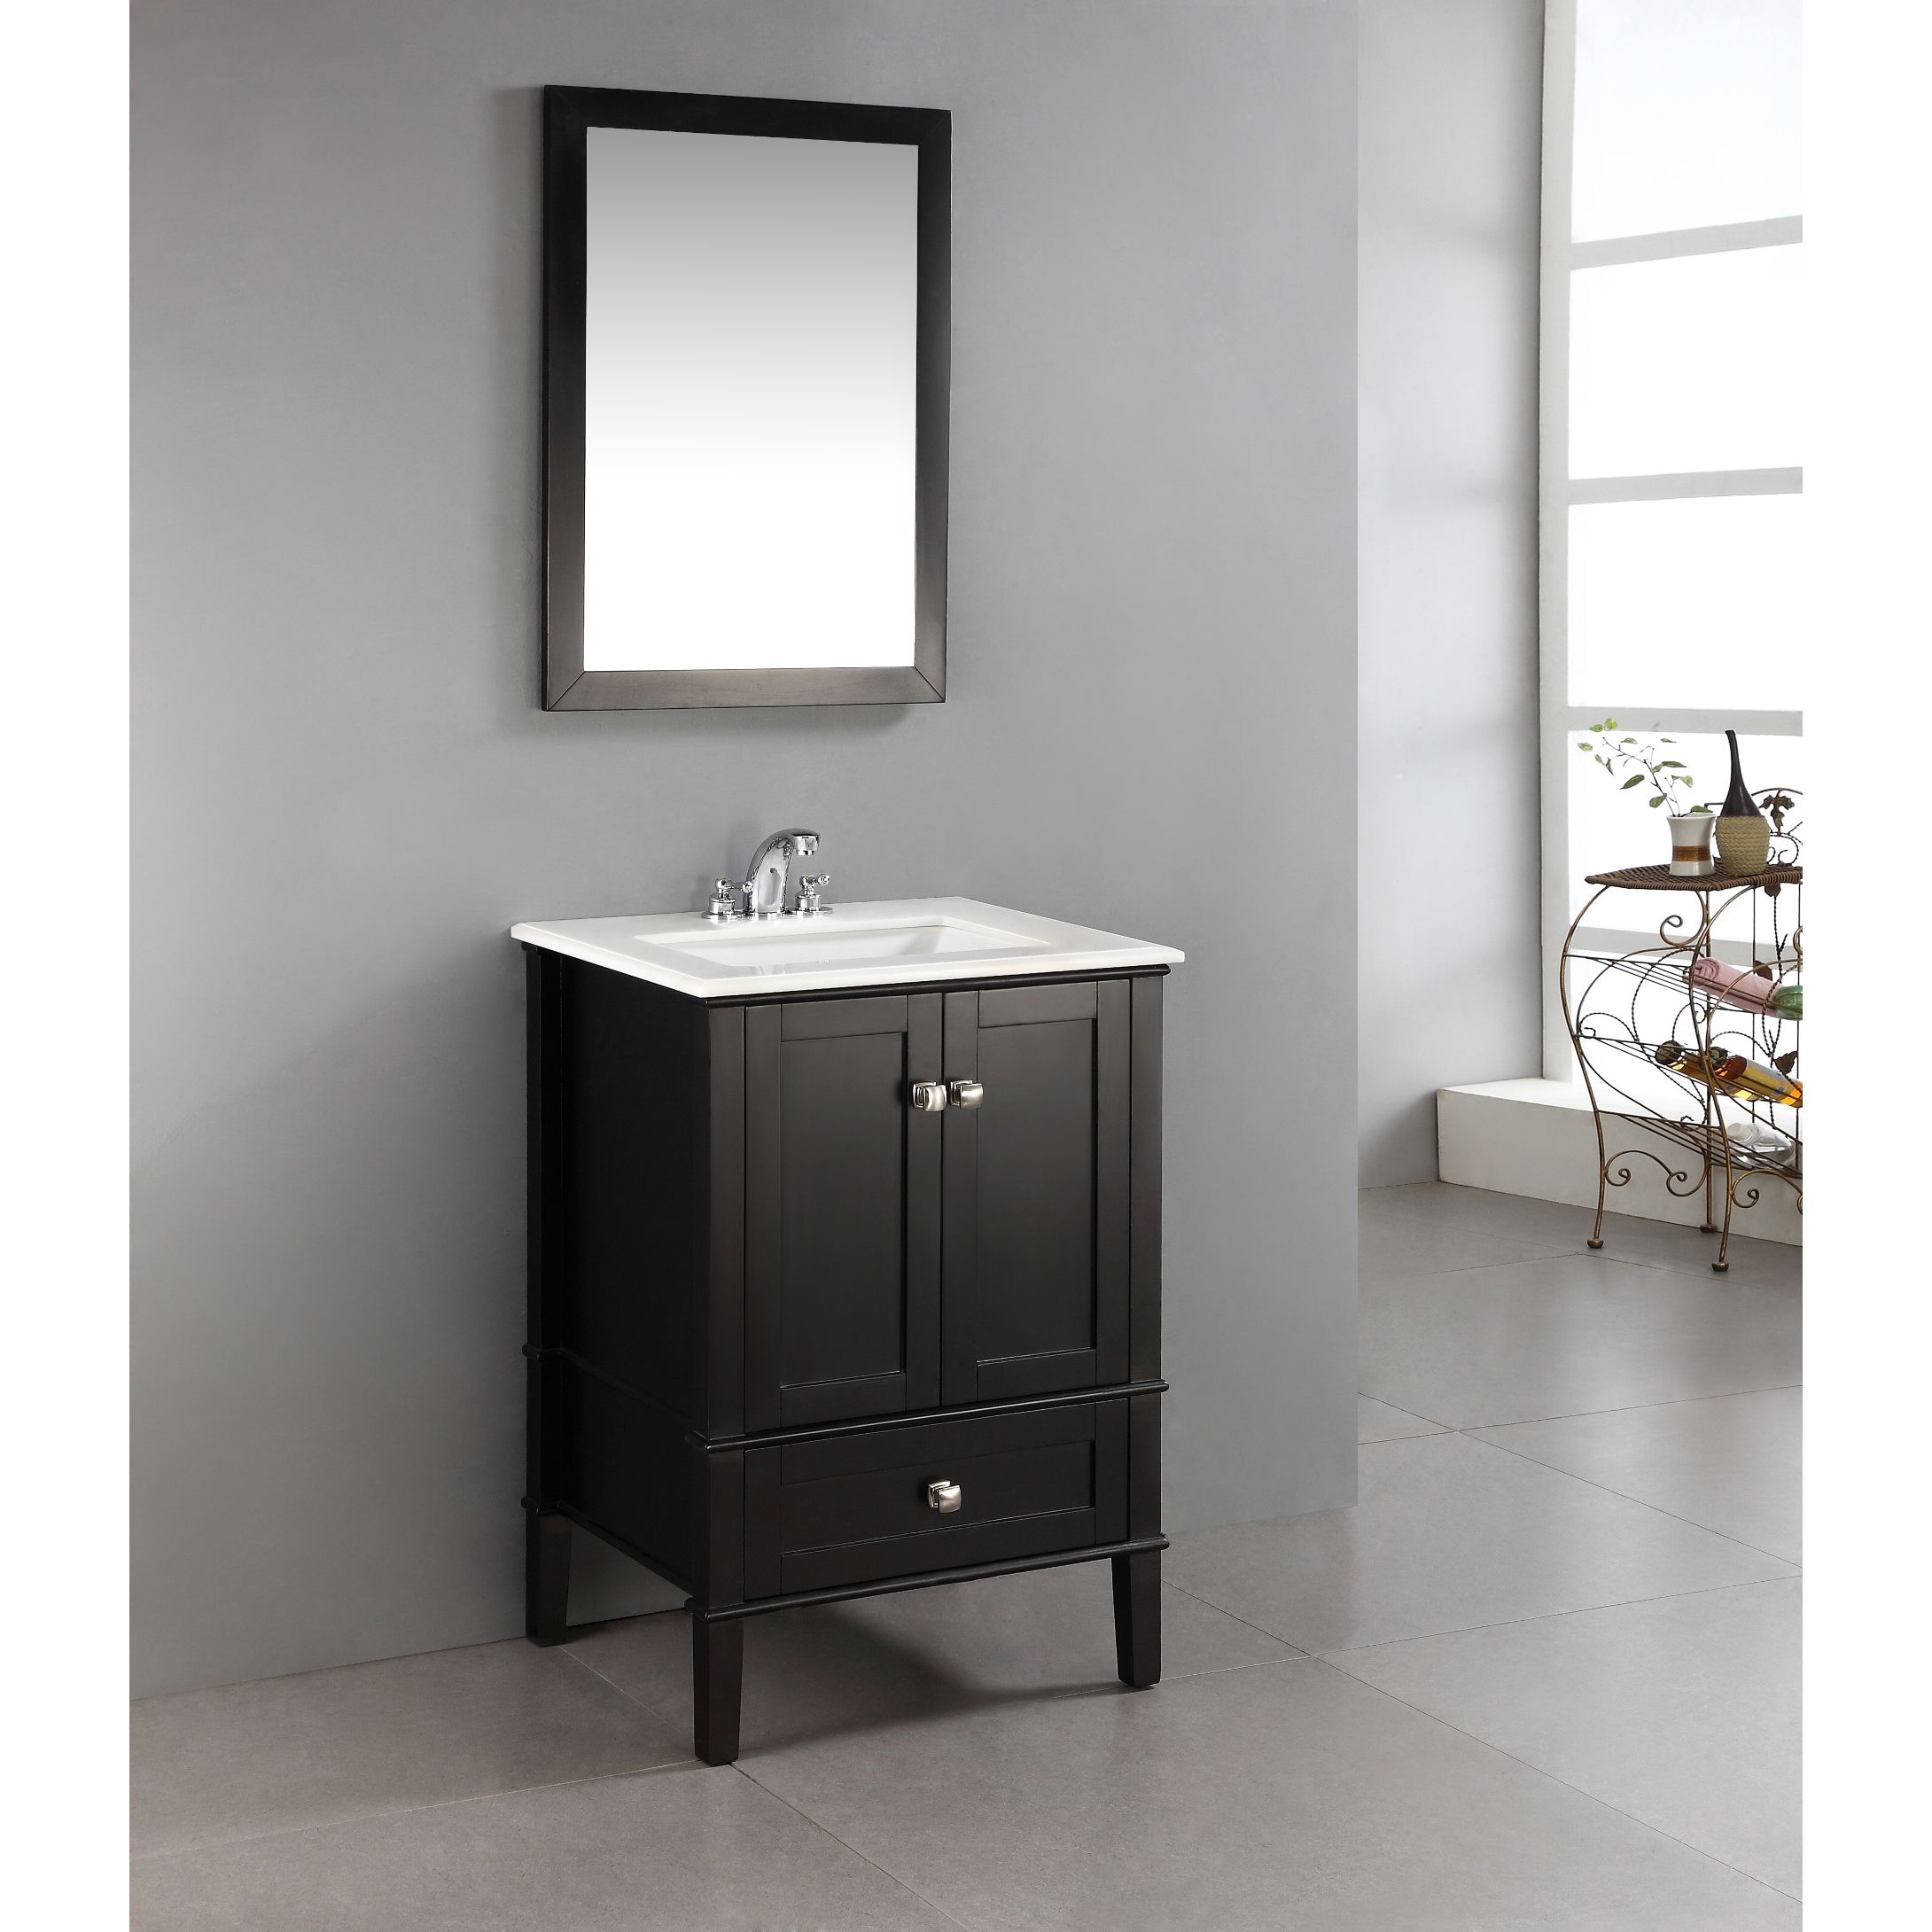 Wyndenhall Windham 24 Inch Contemporary Bath Vanity In Black With